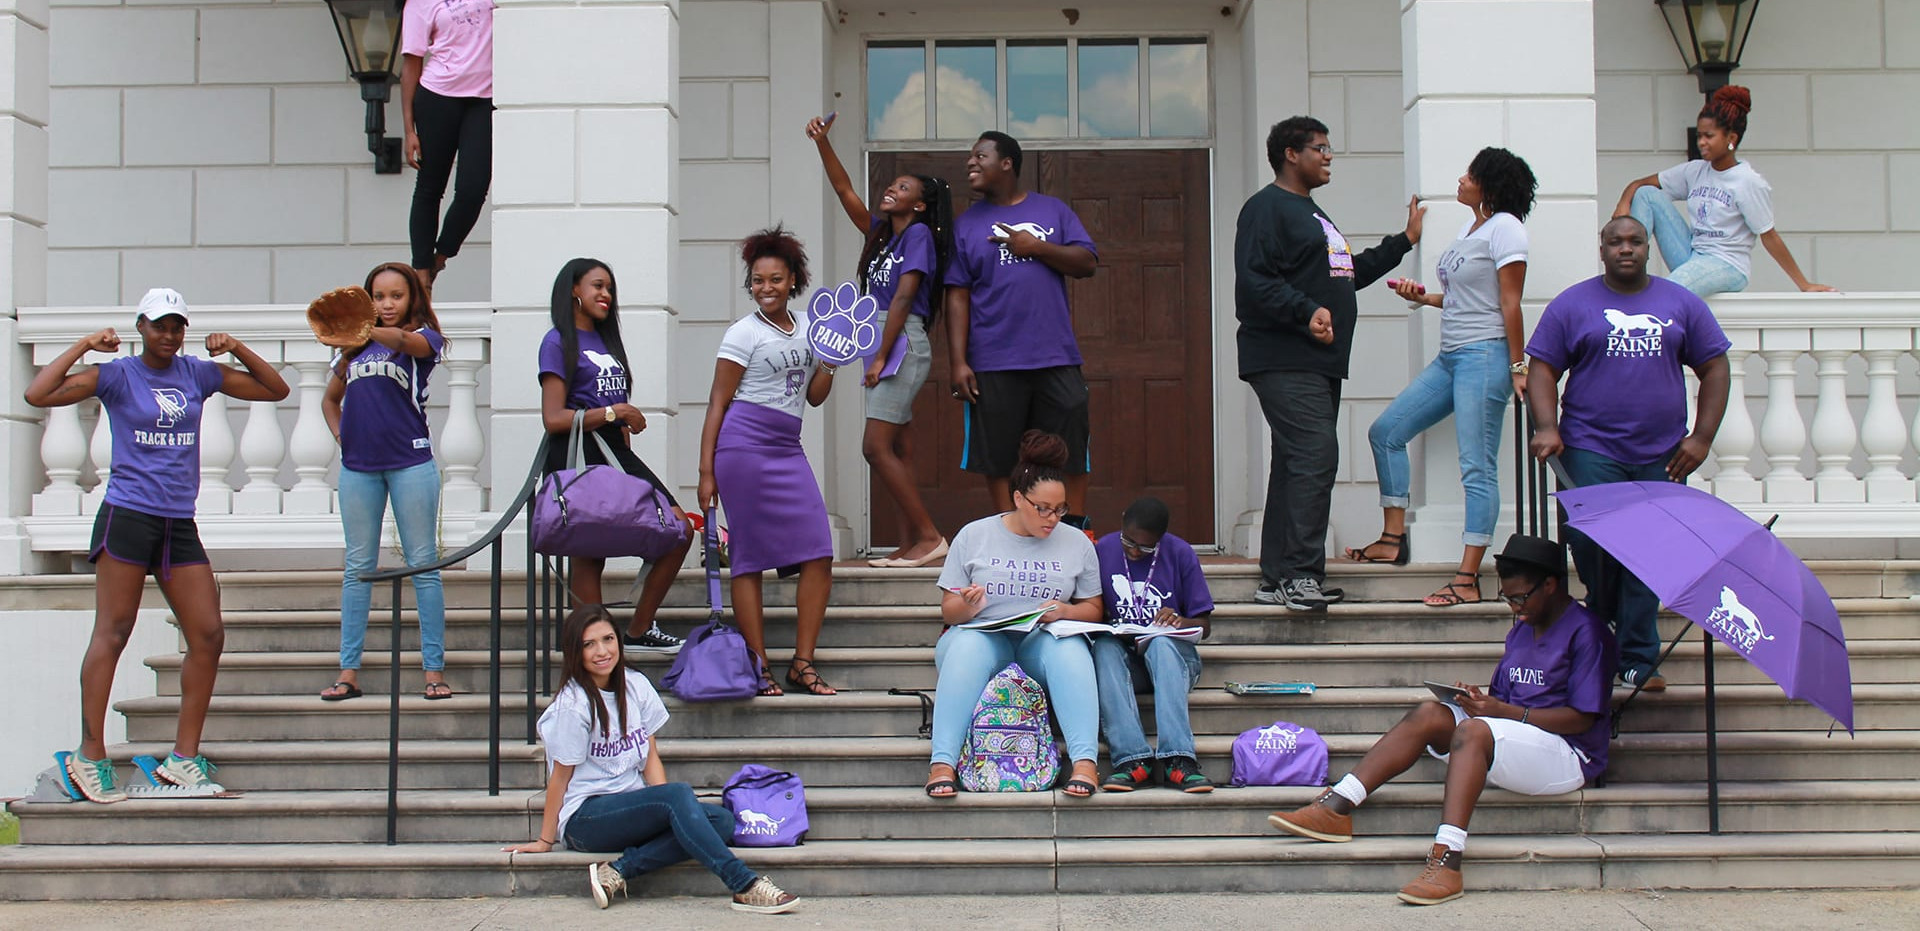 Posed photo of a group of students on the steps of a campus building